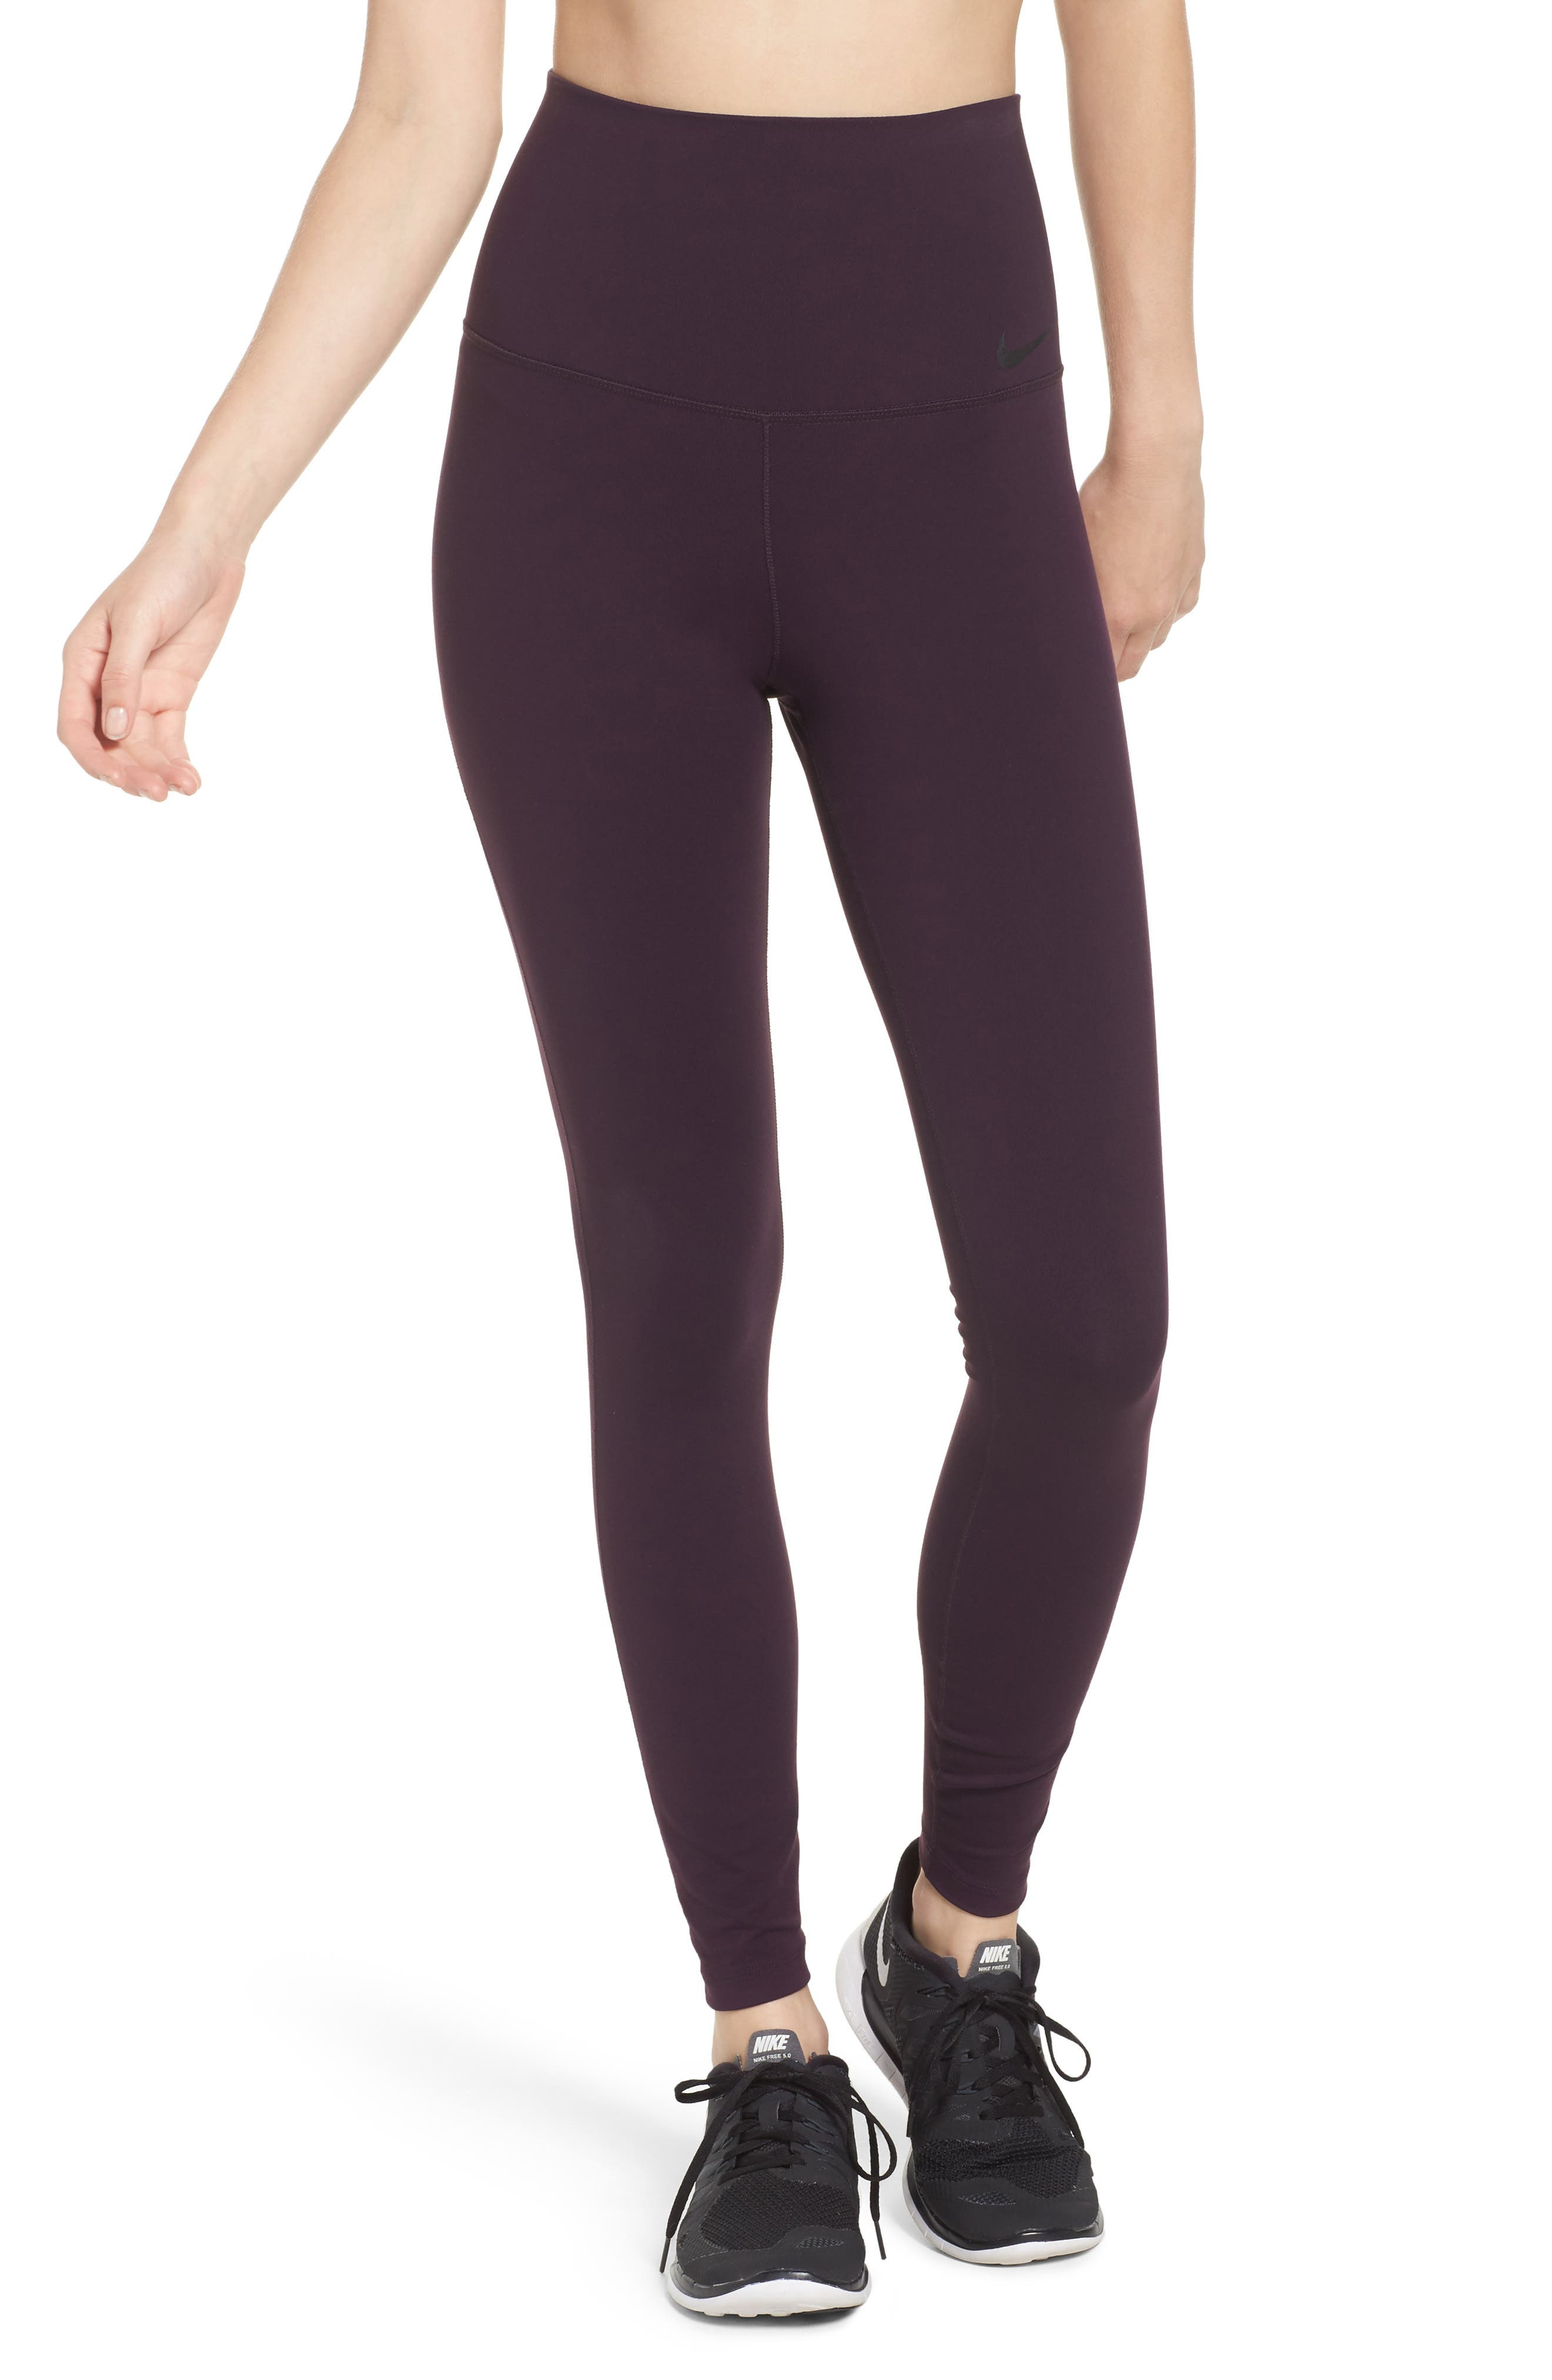 Alternate Image 1 Selected - Nike Power Legendary High Waist Tights